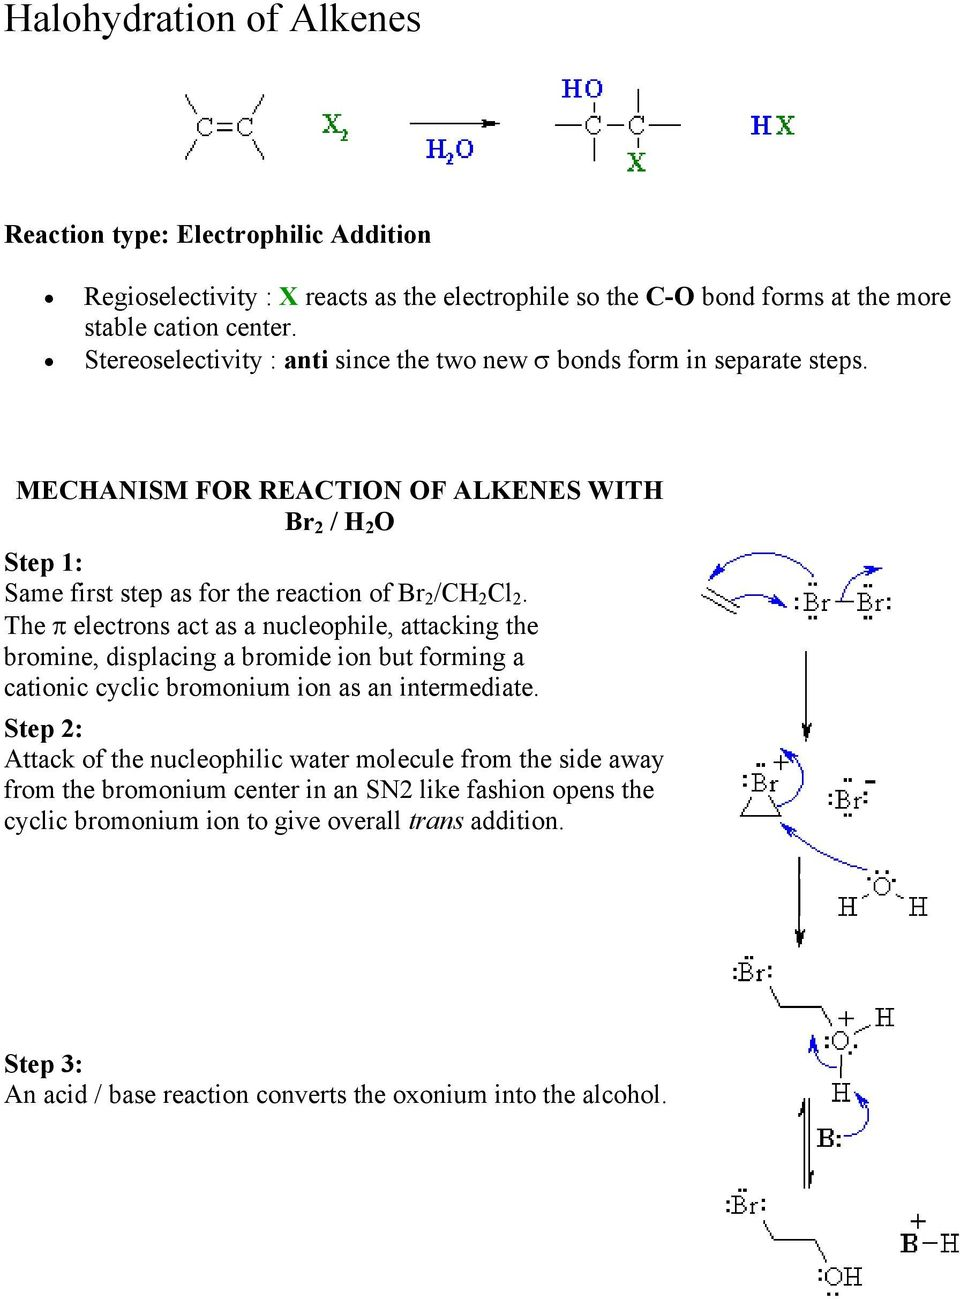 MECHANISM FOR REACTION OF ALKENES WITH Br 2 / H 2 O Same first step as for the reaction of Br 2 /CH 2 Cl 2.